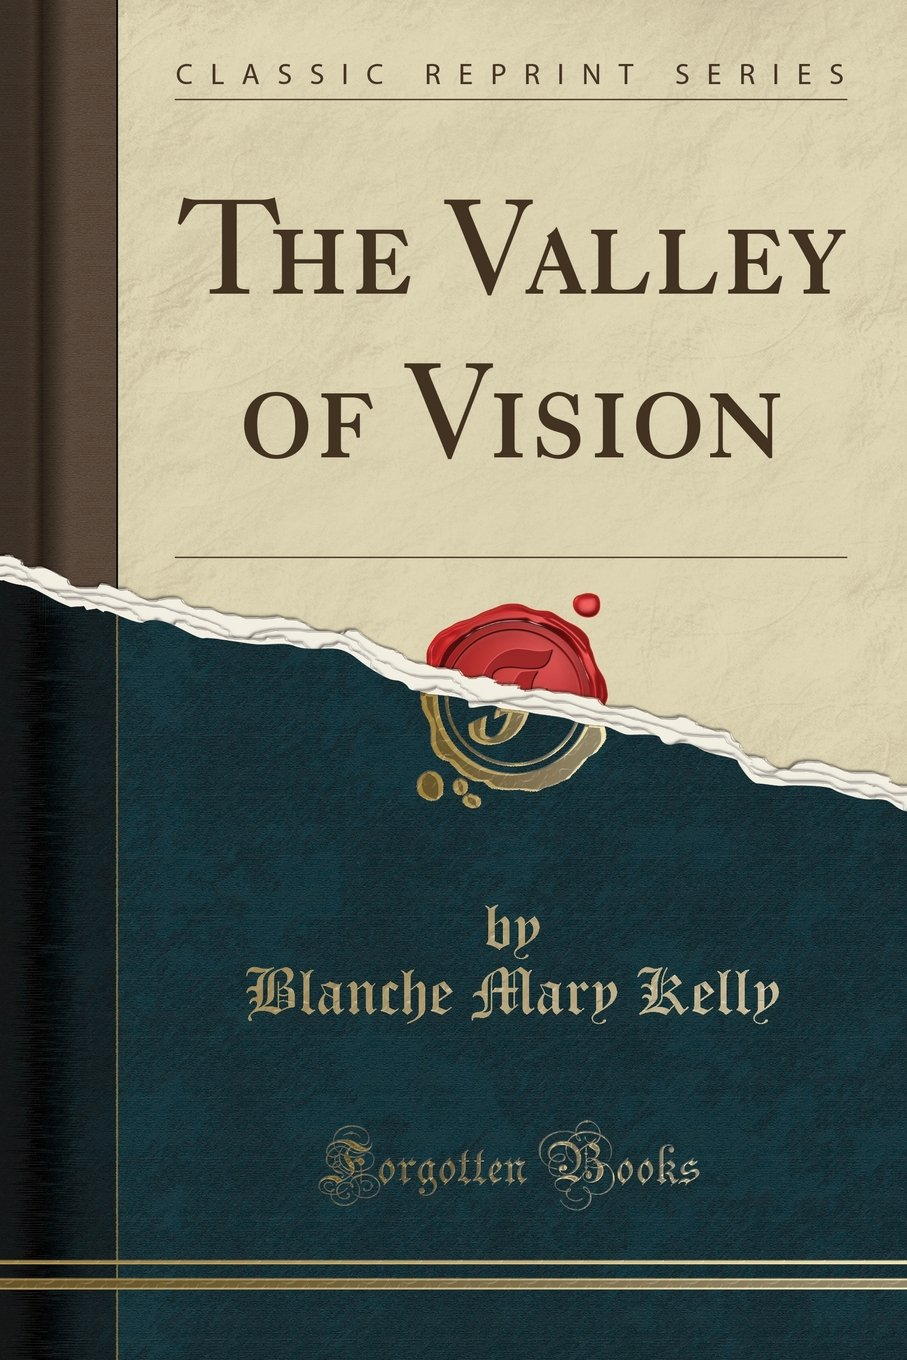 The valley of vision classic reprint blanche mary kelly the valley of vision classic reprint blanche mary kelly 9781332208807 amazon books fandeluxe Images